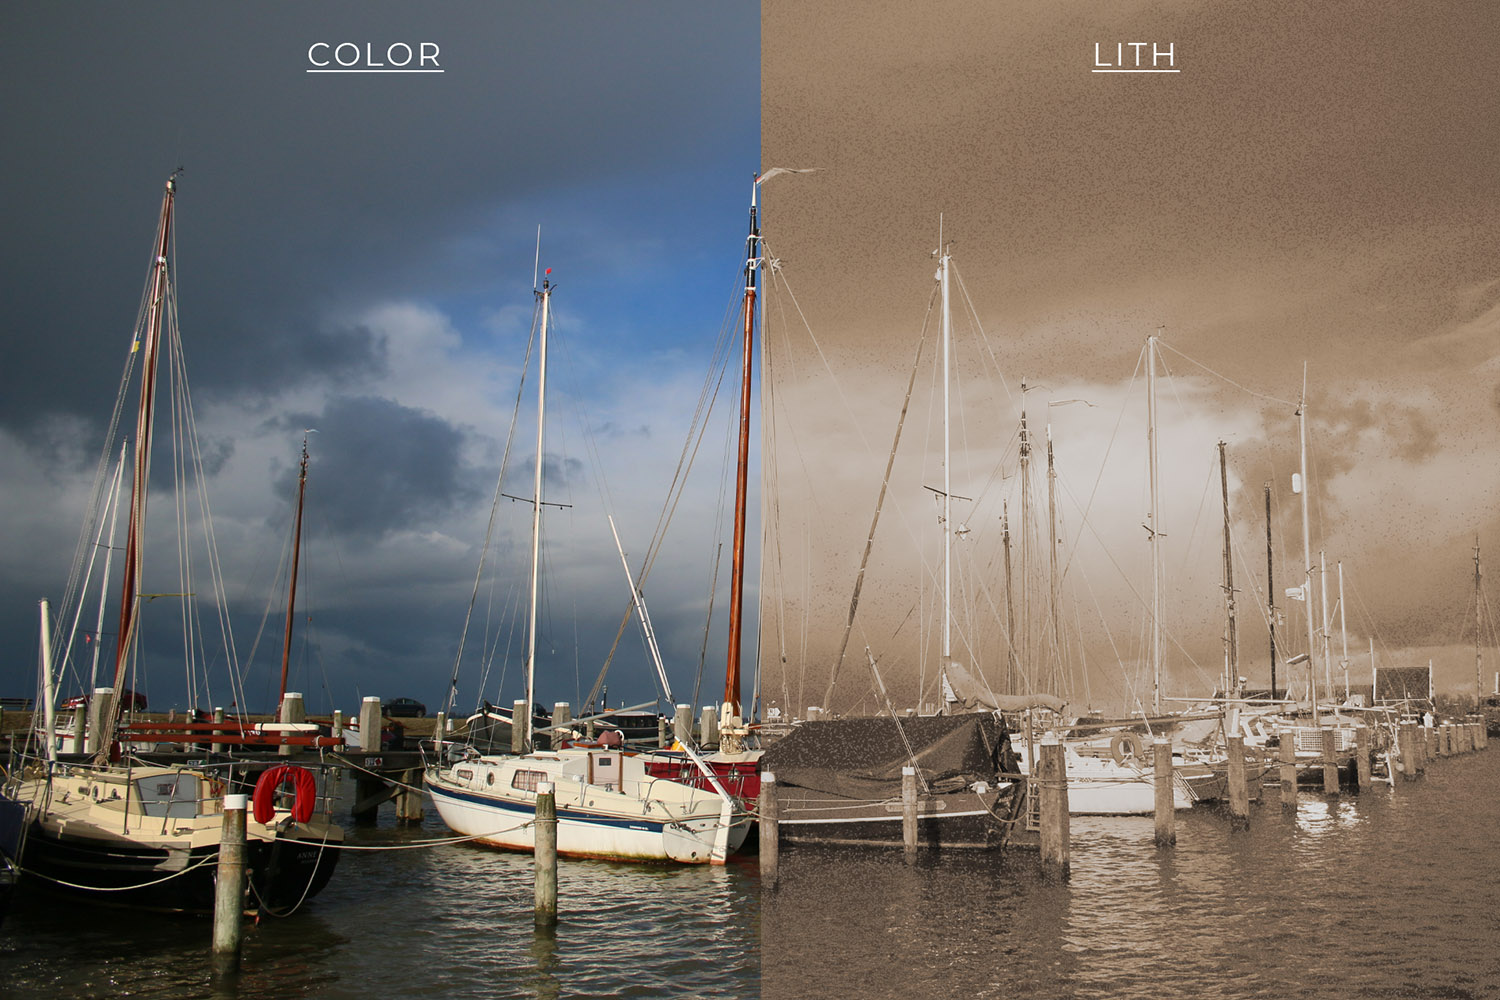 1- How to Create a Lithography Effect Using Photoshop